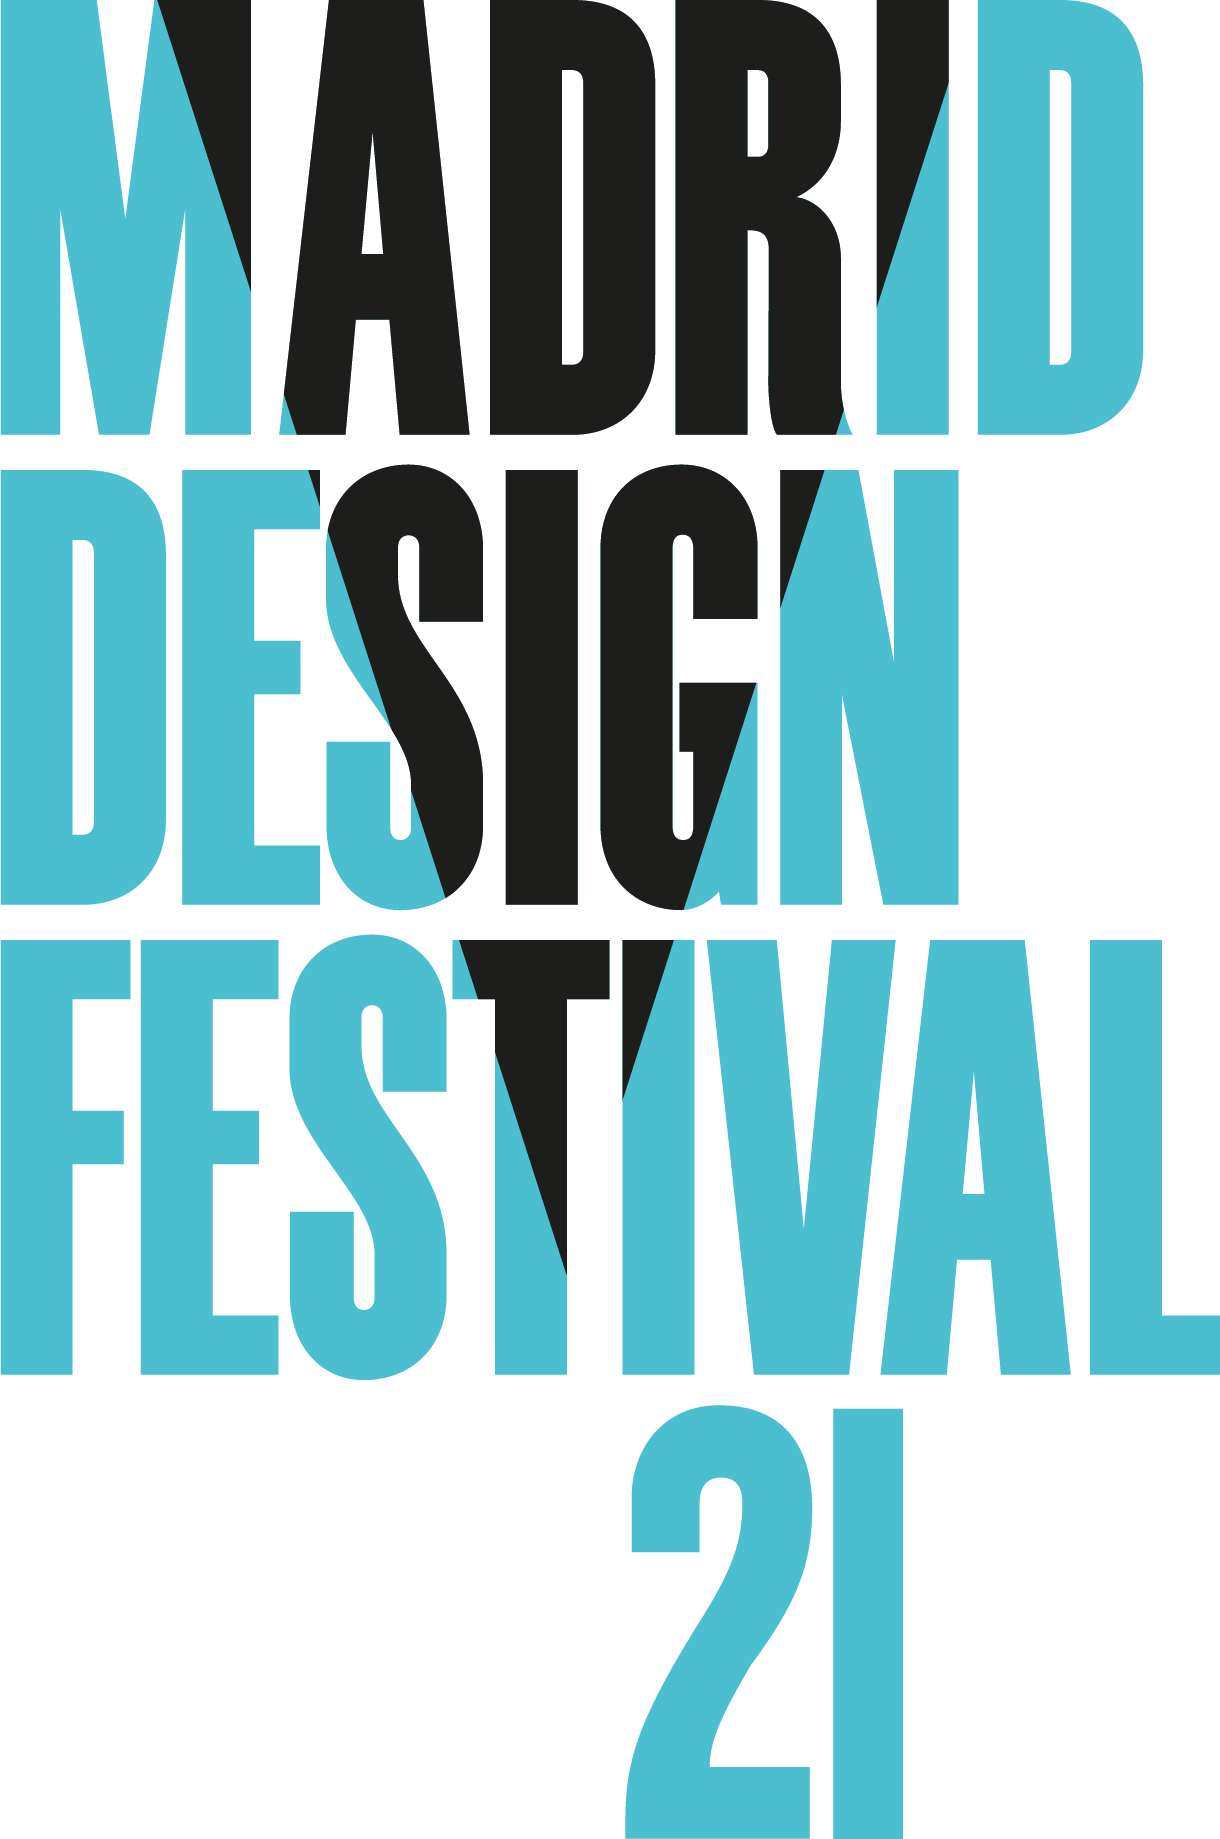 Madrid Design Festival 21